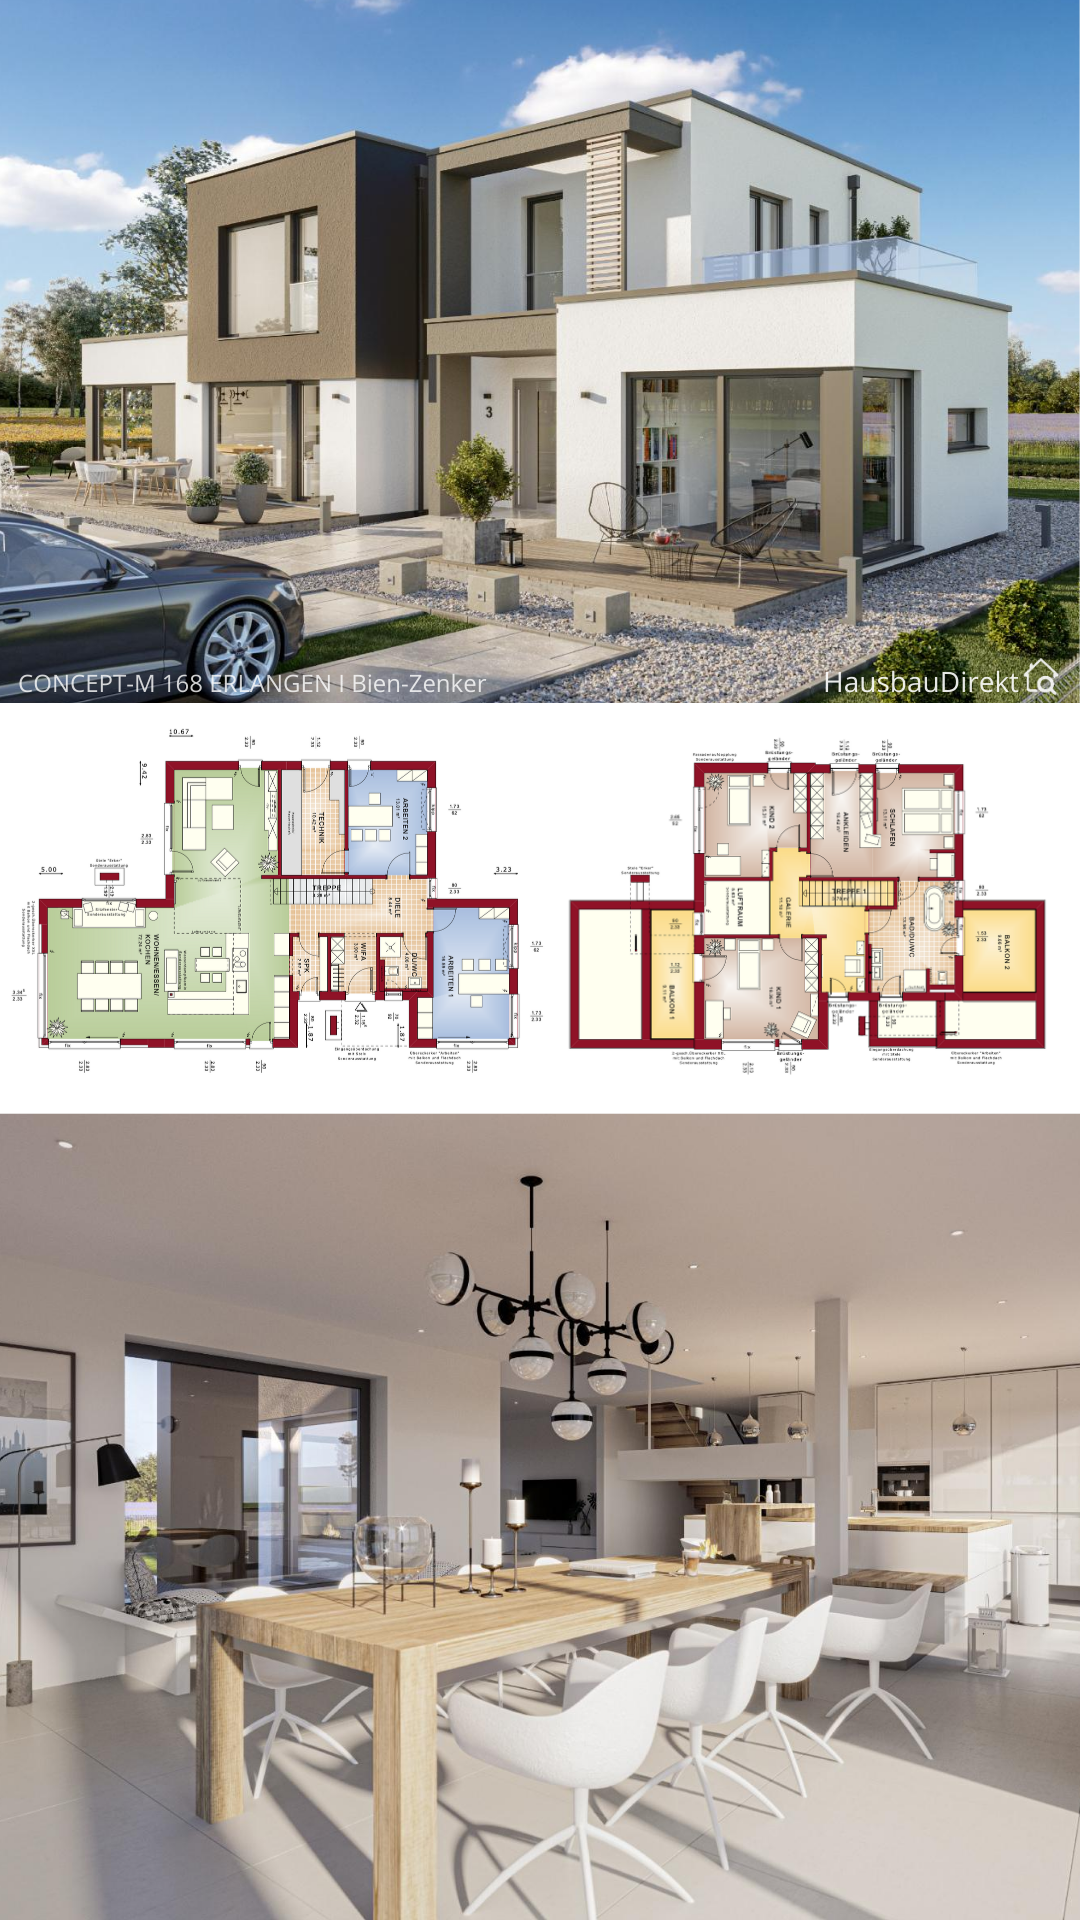 Modern House Floor Plans with Gallery and Flat Roof Contemporary European Minimalist Design Ideas